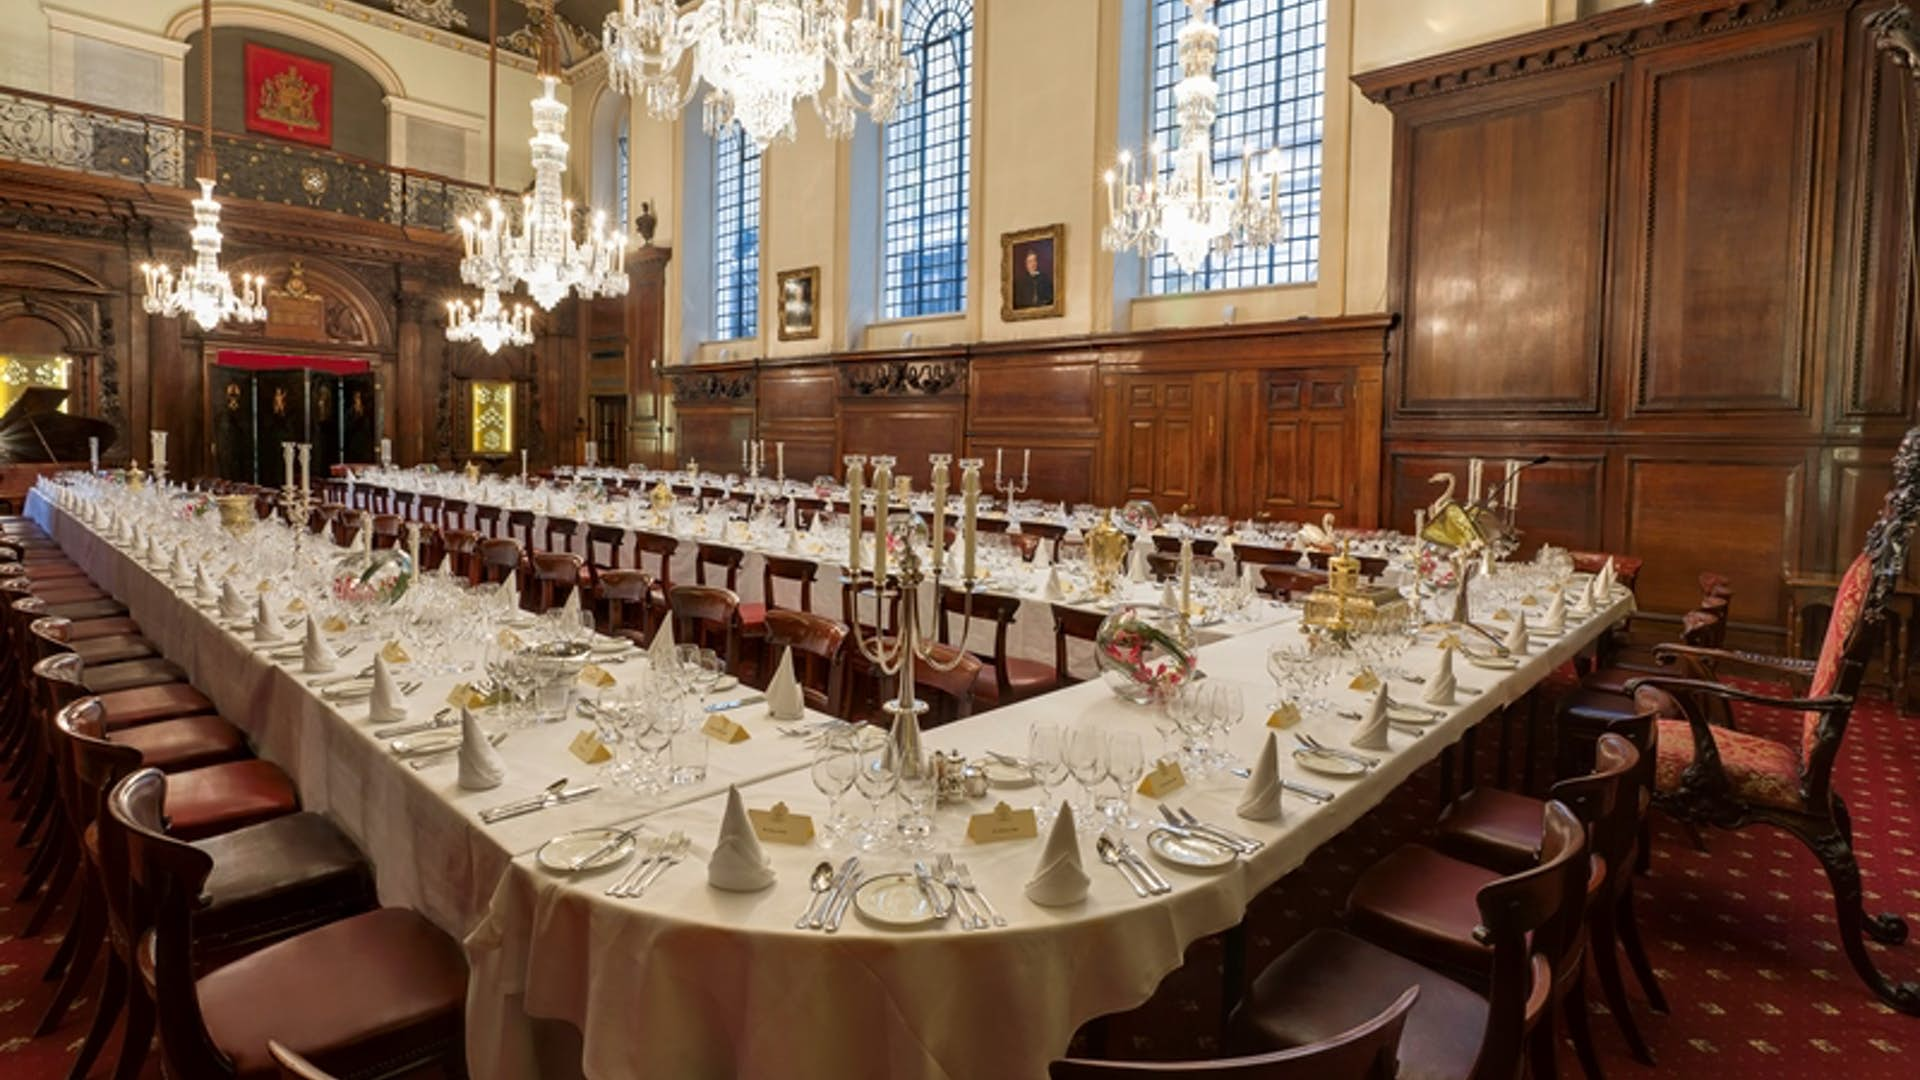 The Livery Hall at Vintners' Hall